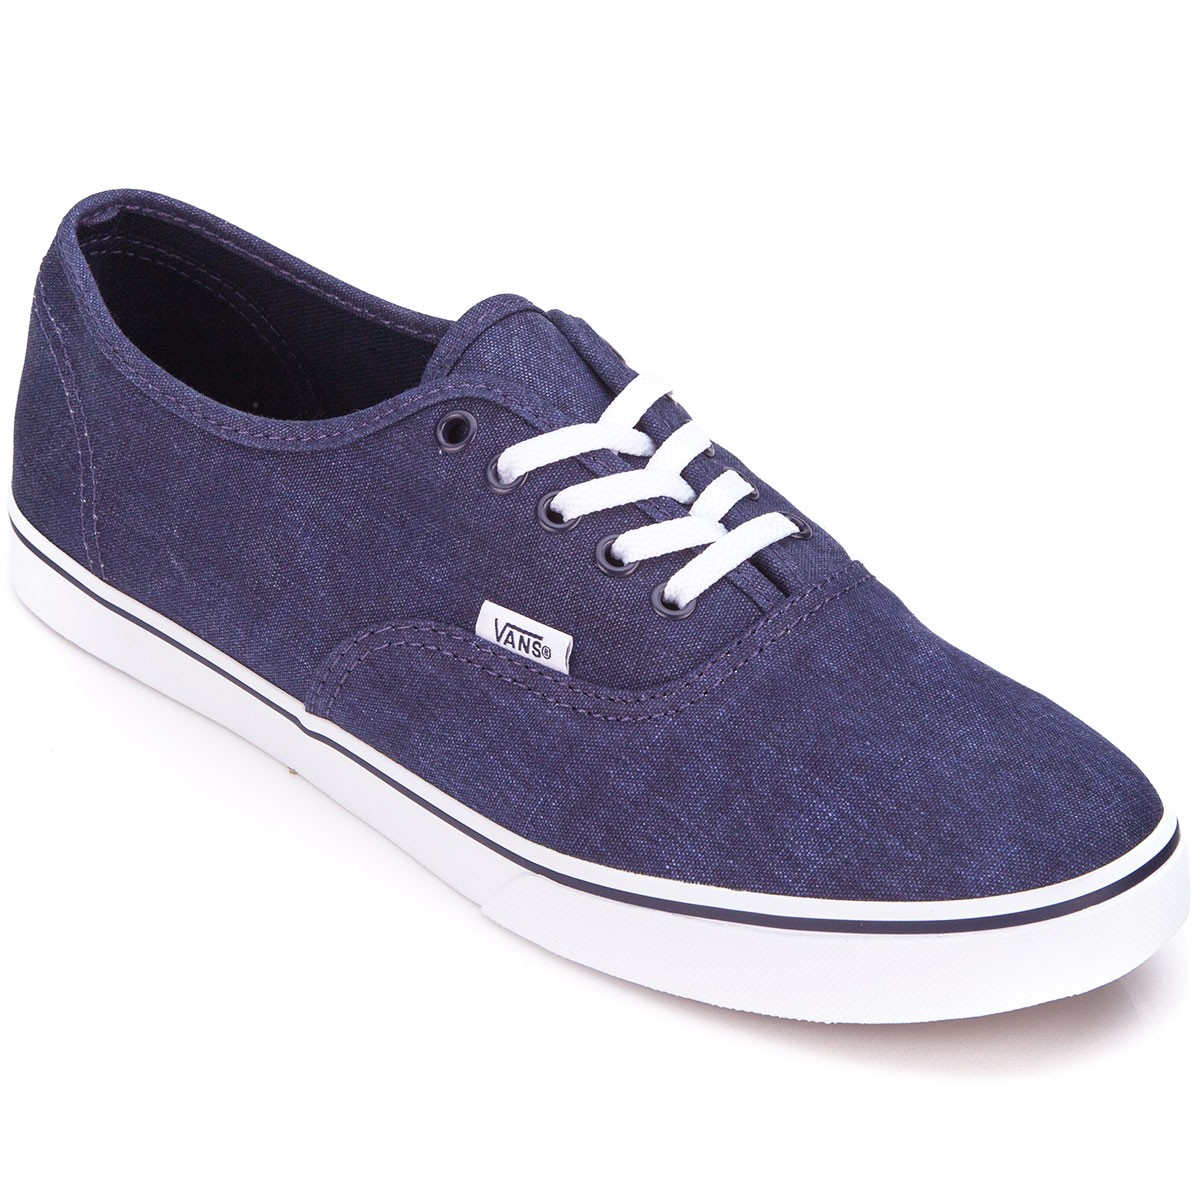 b0d98f02b7fb Vans Authentic Lo Pro Womens Shoes